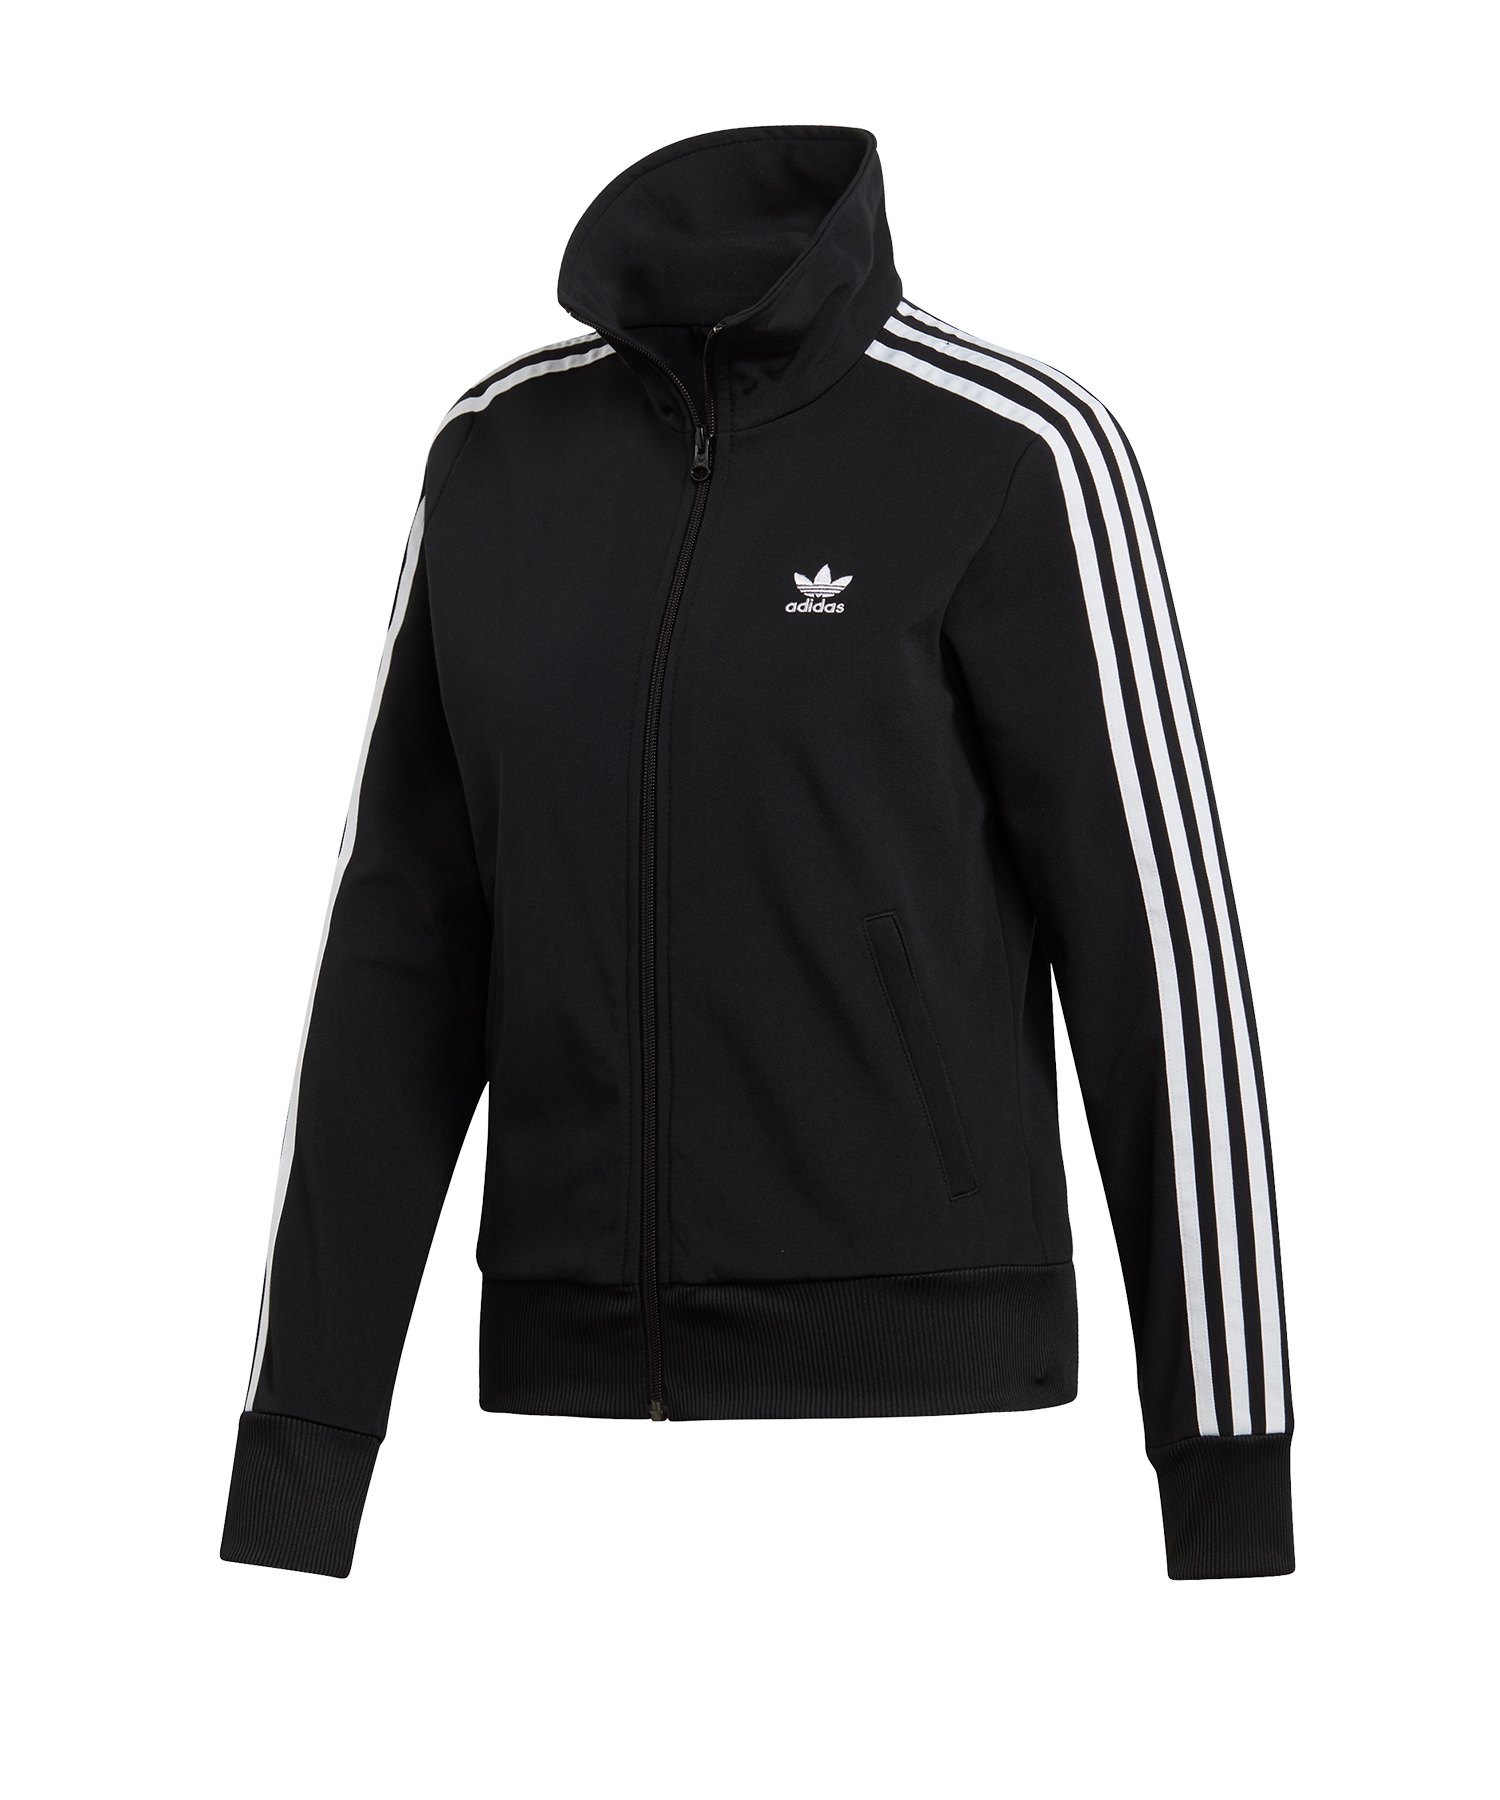 adidas Originals 3 Stripes Zip Hoodie Damen Sweatjacke Kapuzenjacke Schwarz